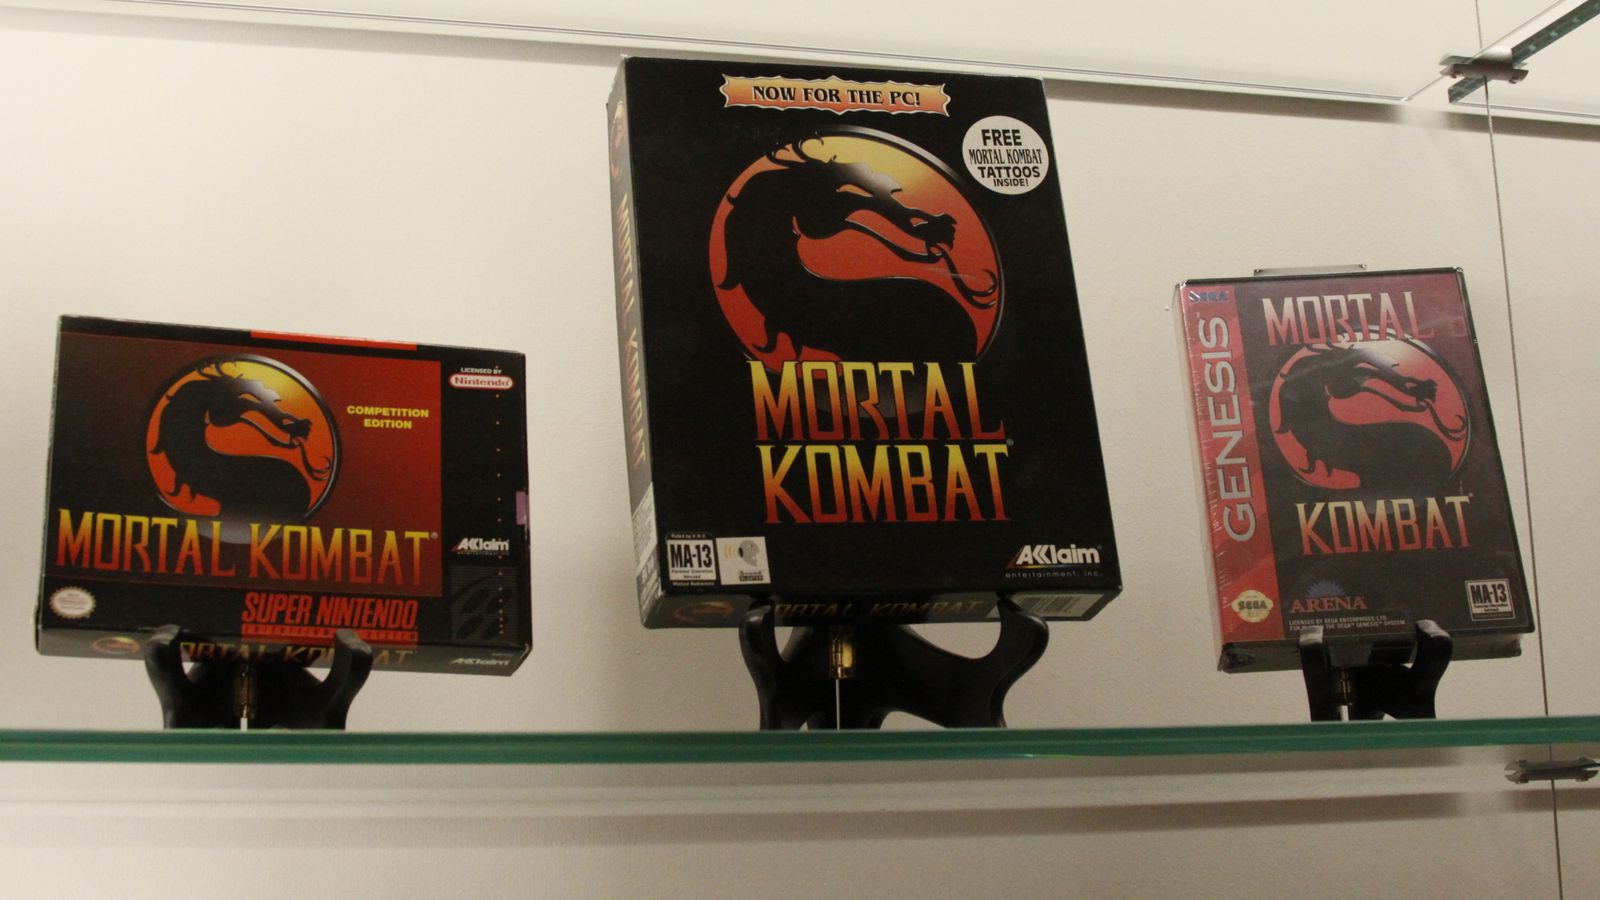 Two decades of Mortal Kombat: Inside NetherRealm Studios